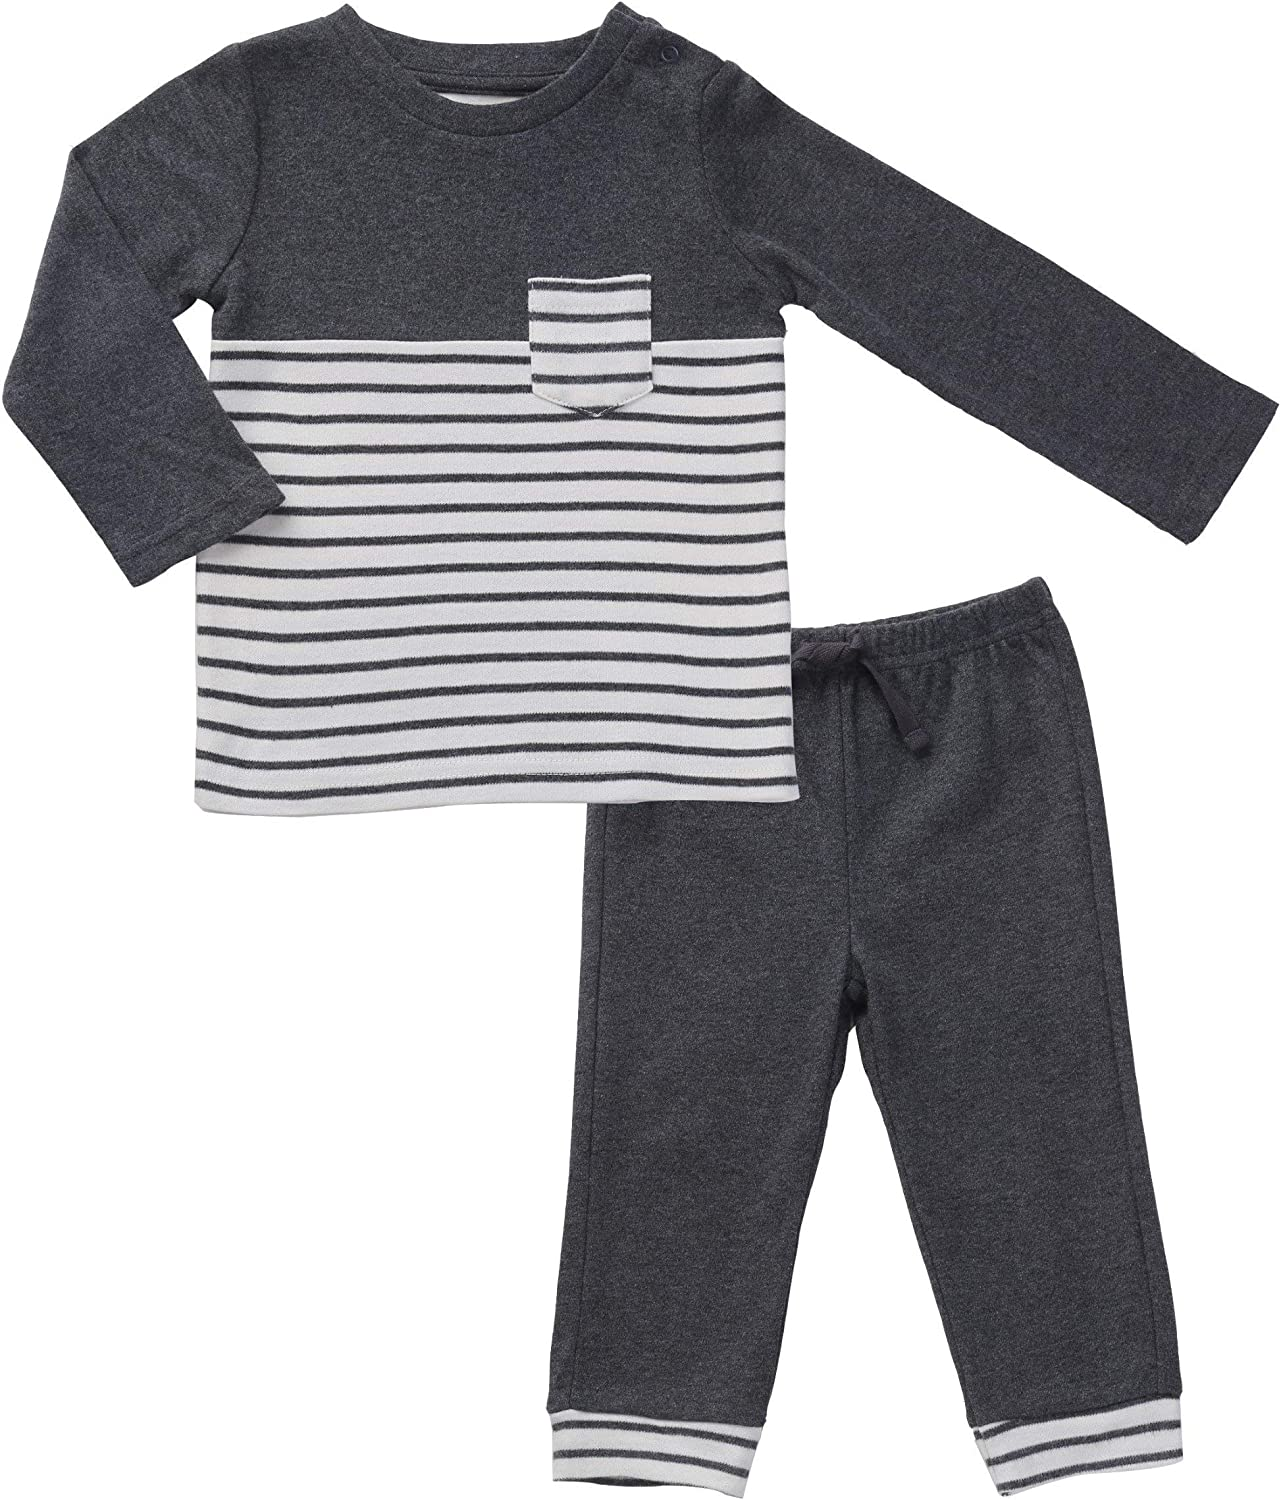 Gender Neutral Baby Clothes Black Max 41% OFF T-Shirt and White Striped Phoenix Mall